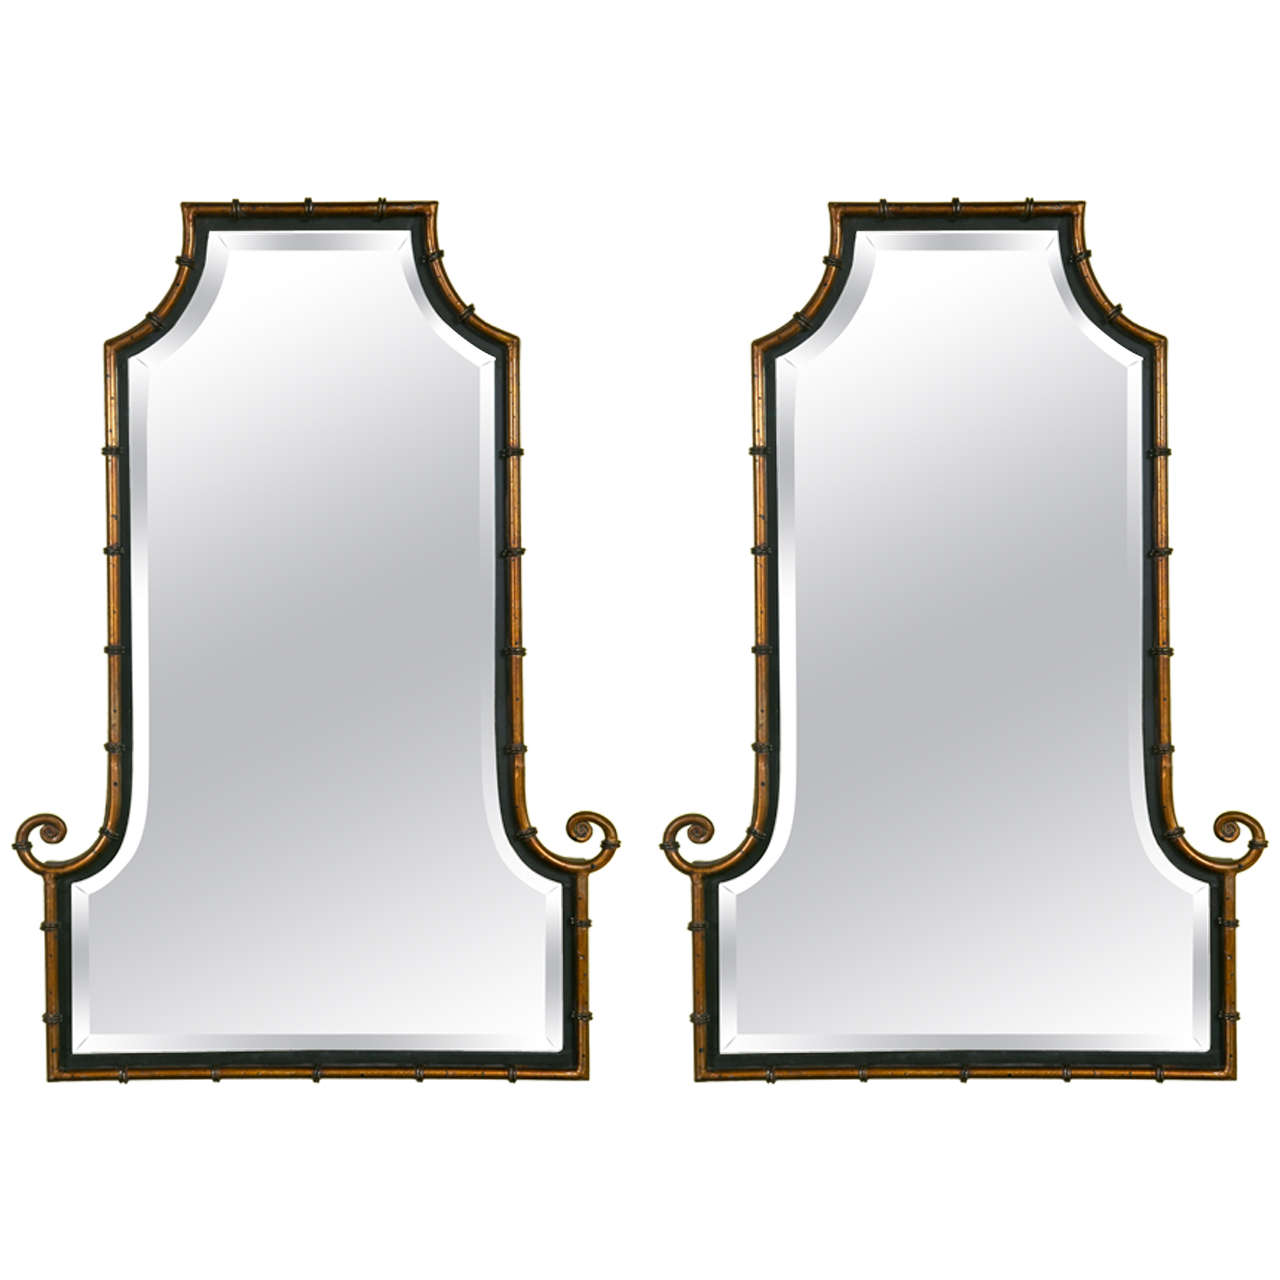 Pair of vintage faux bamboo style mirrors at 1stdibs for Vintage style mirrors